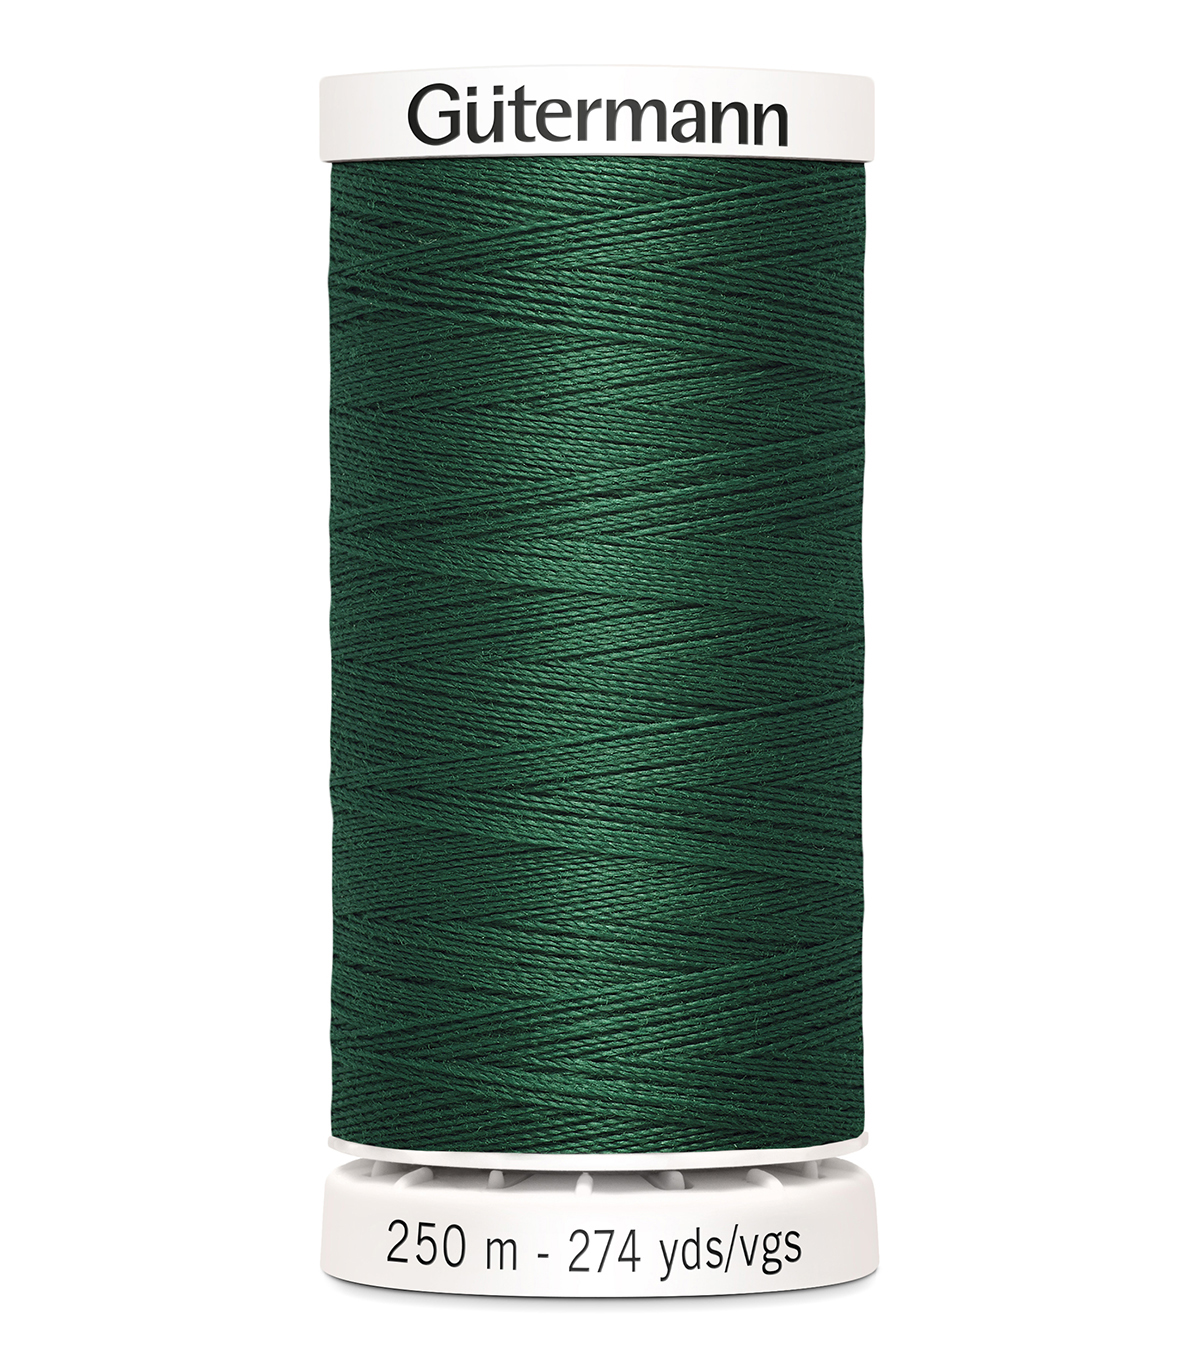 Gutermann Sew-All Thread 273Yds-(600 & 700 series) Cool Tones , Dark Green #788